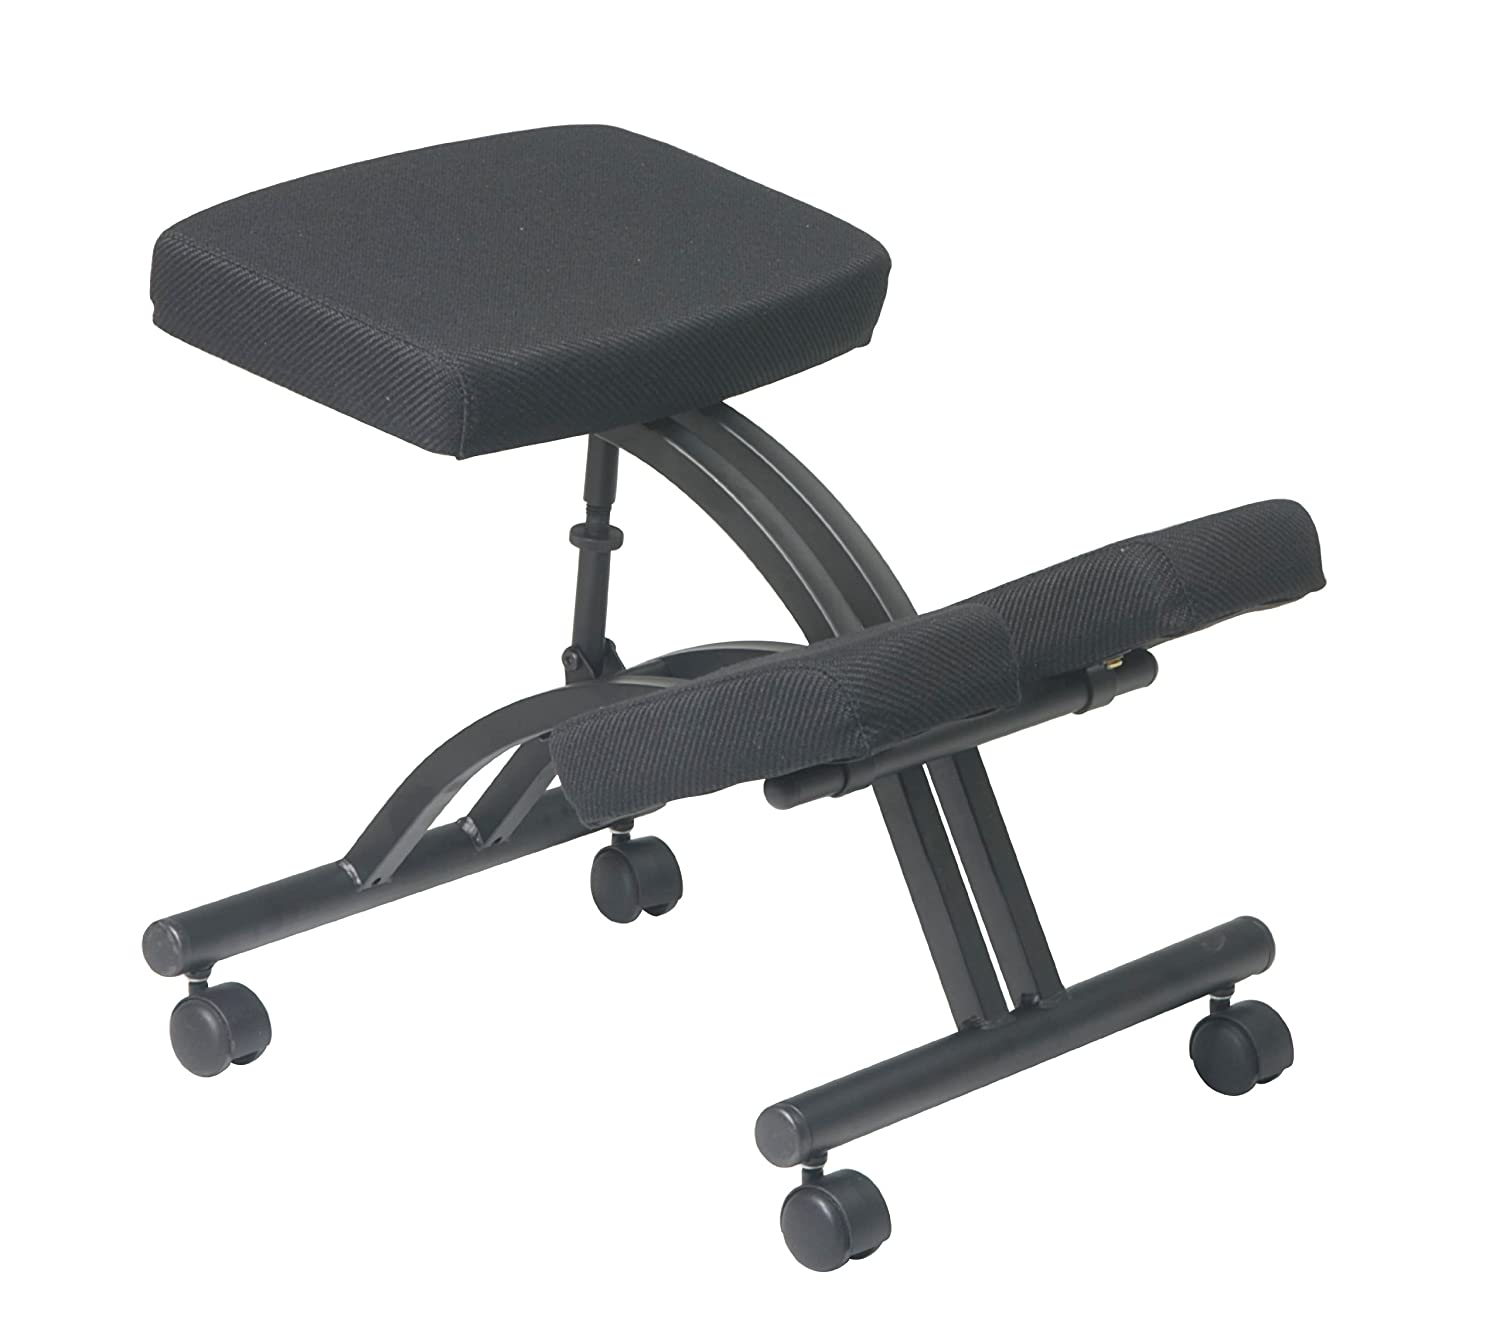 Ergonomic office chair kneeling posture - Amazon Com Office Star Ergonomically Designed Knee Chair With Casters Memory Foam And Black Metal Base Black Kitchen Dining